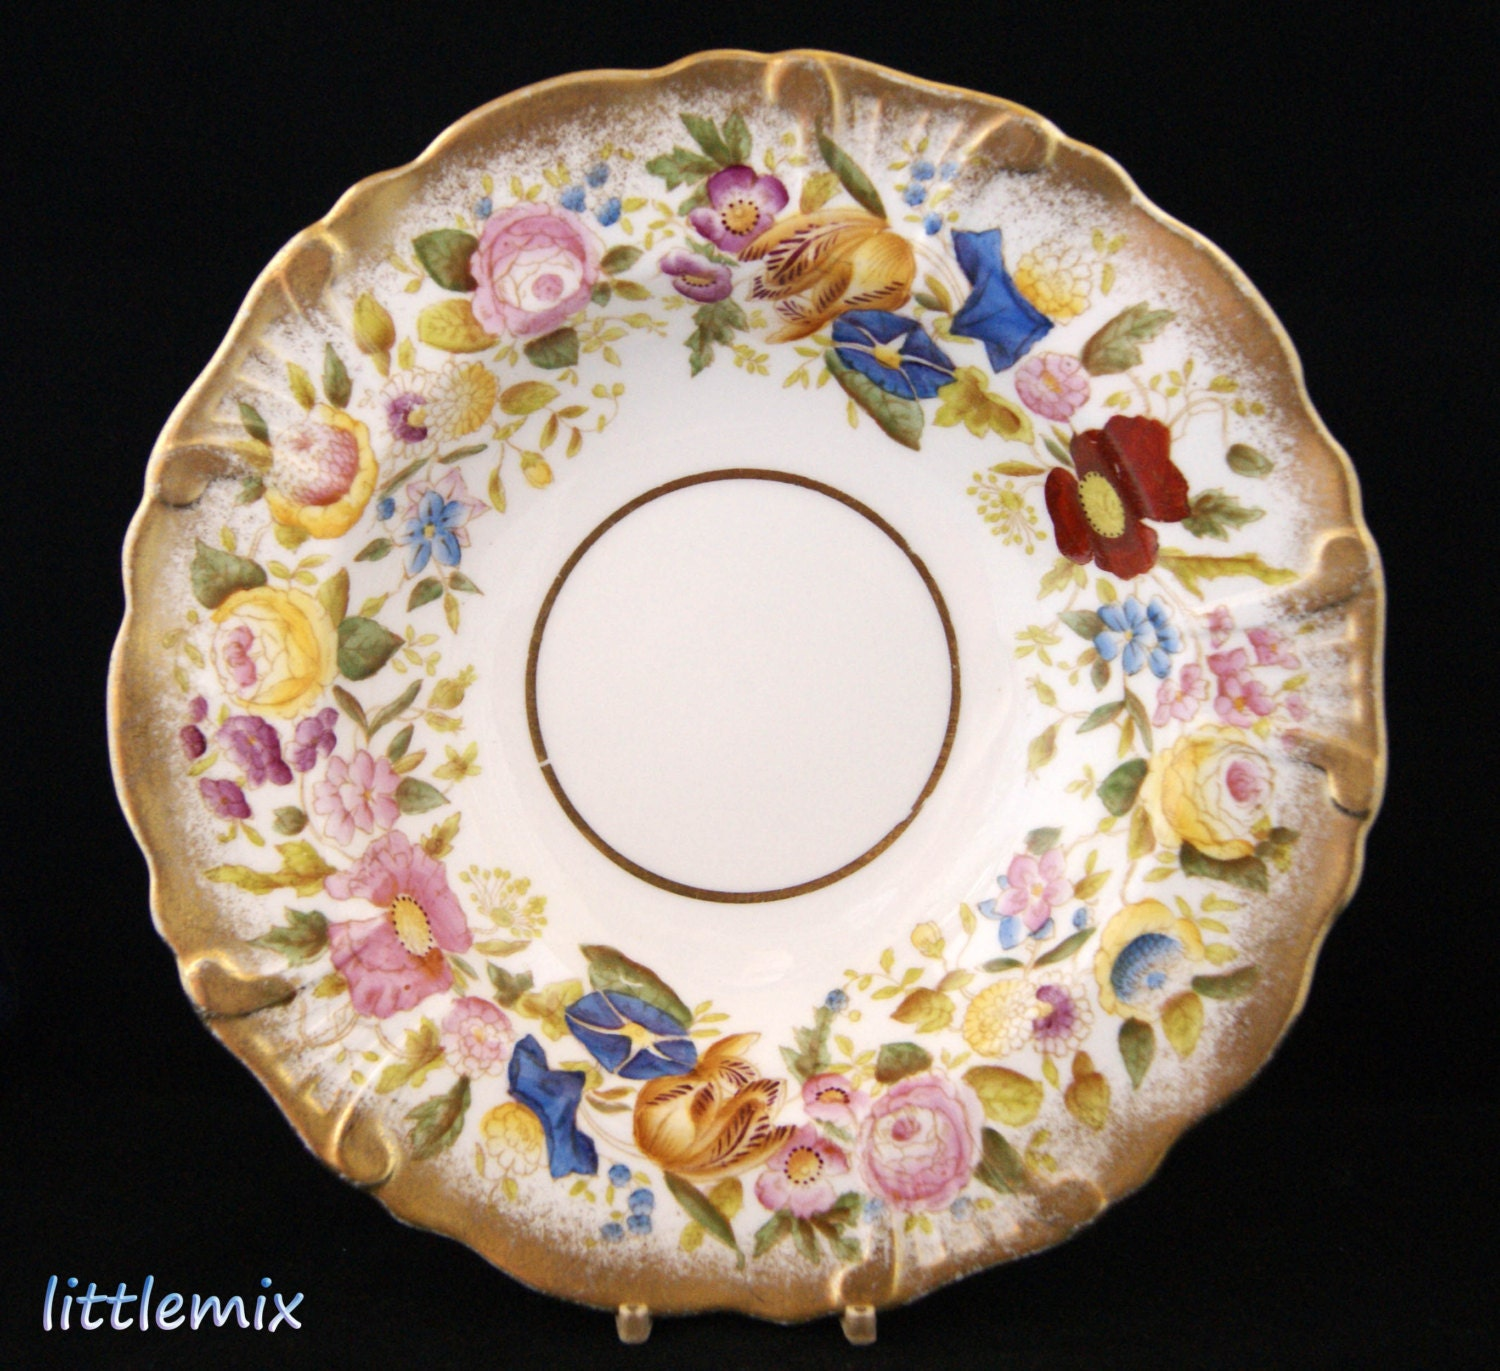 dating hammersley china China had several alternative names in ancient times including chixian shenzhou, hua and xia the oldest is chixian shenzhou, which means the sacred earth and divine land this reference was found in a book dating between 475 and 221 bc hua, which means flowers, was also used in ancient times to.